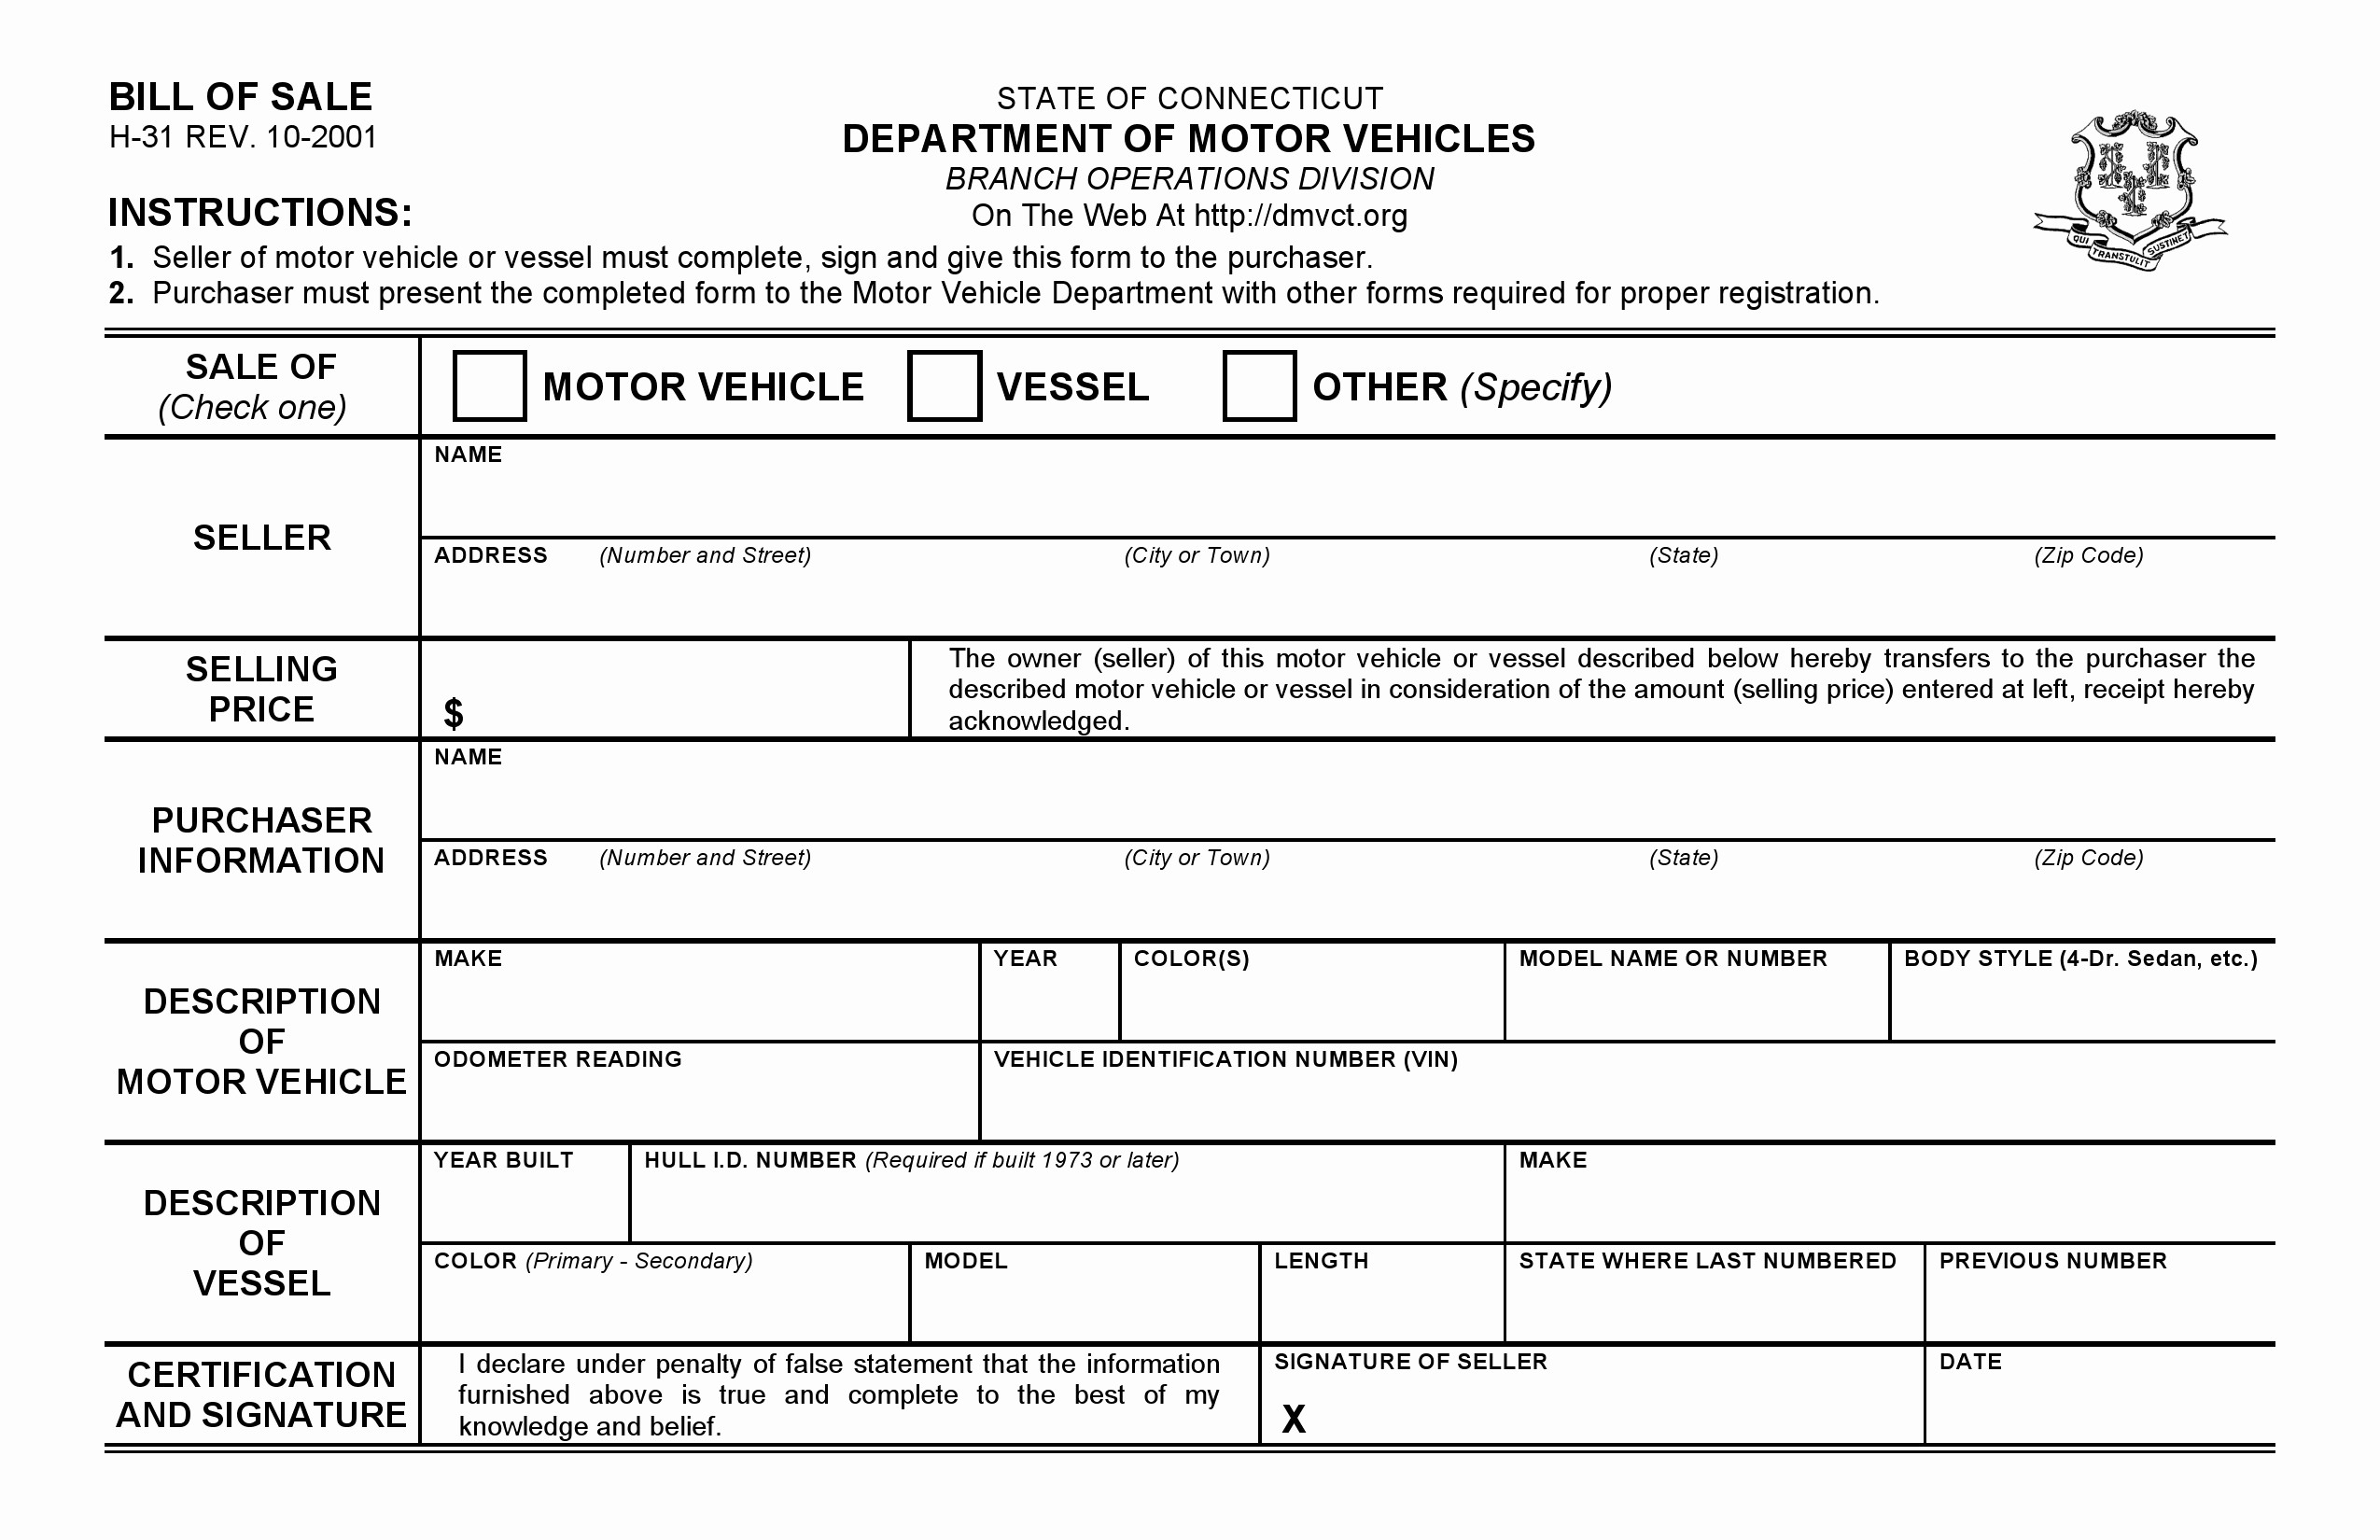 Bill Of Sale form Download Luxury State Connecticut Department Motor Vehicles